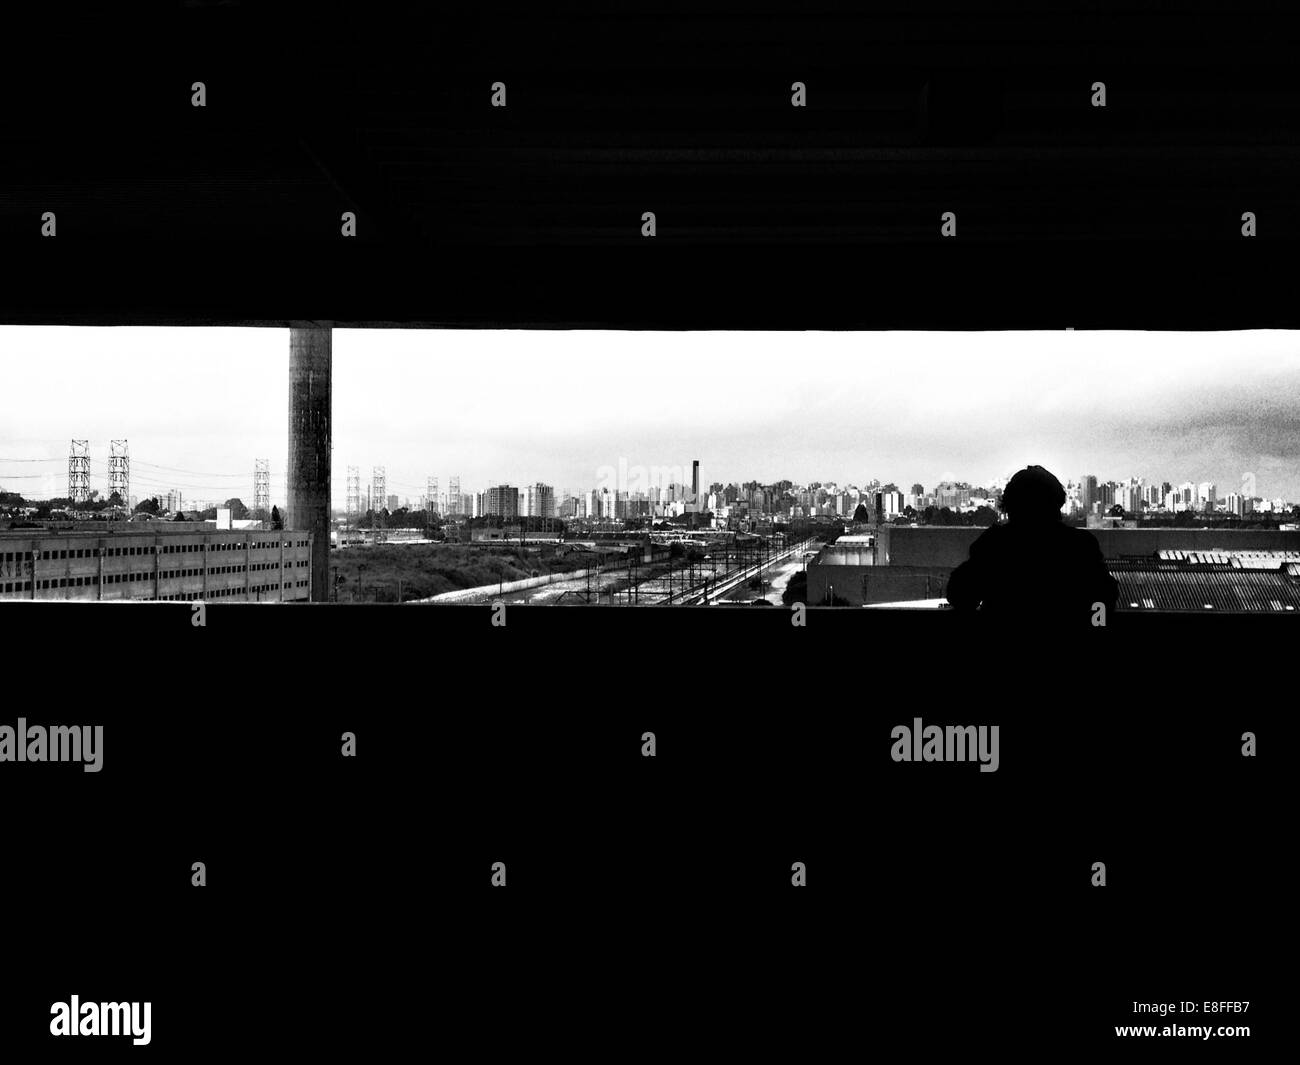 Silhouette of a person looking at city skyline, Sao Paulo, Brazil - Stock Image